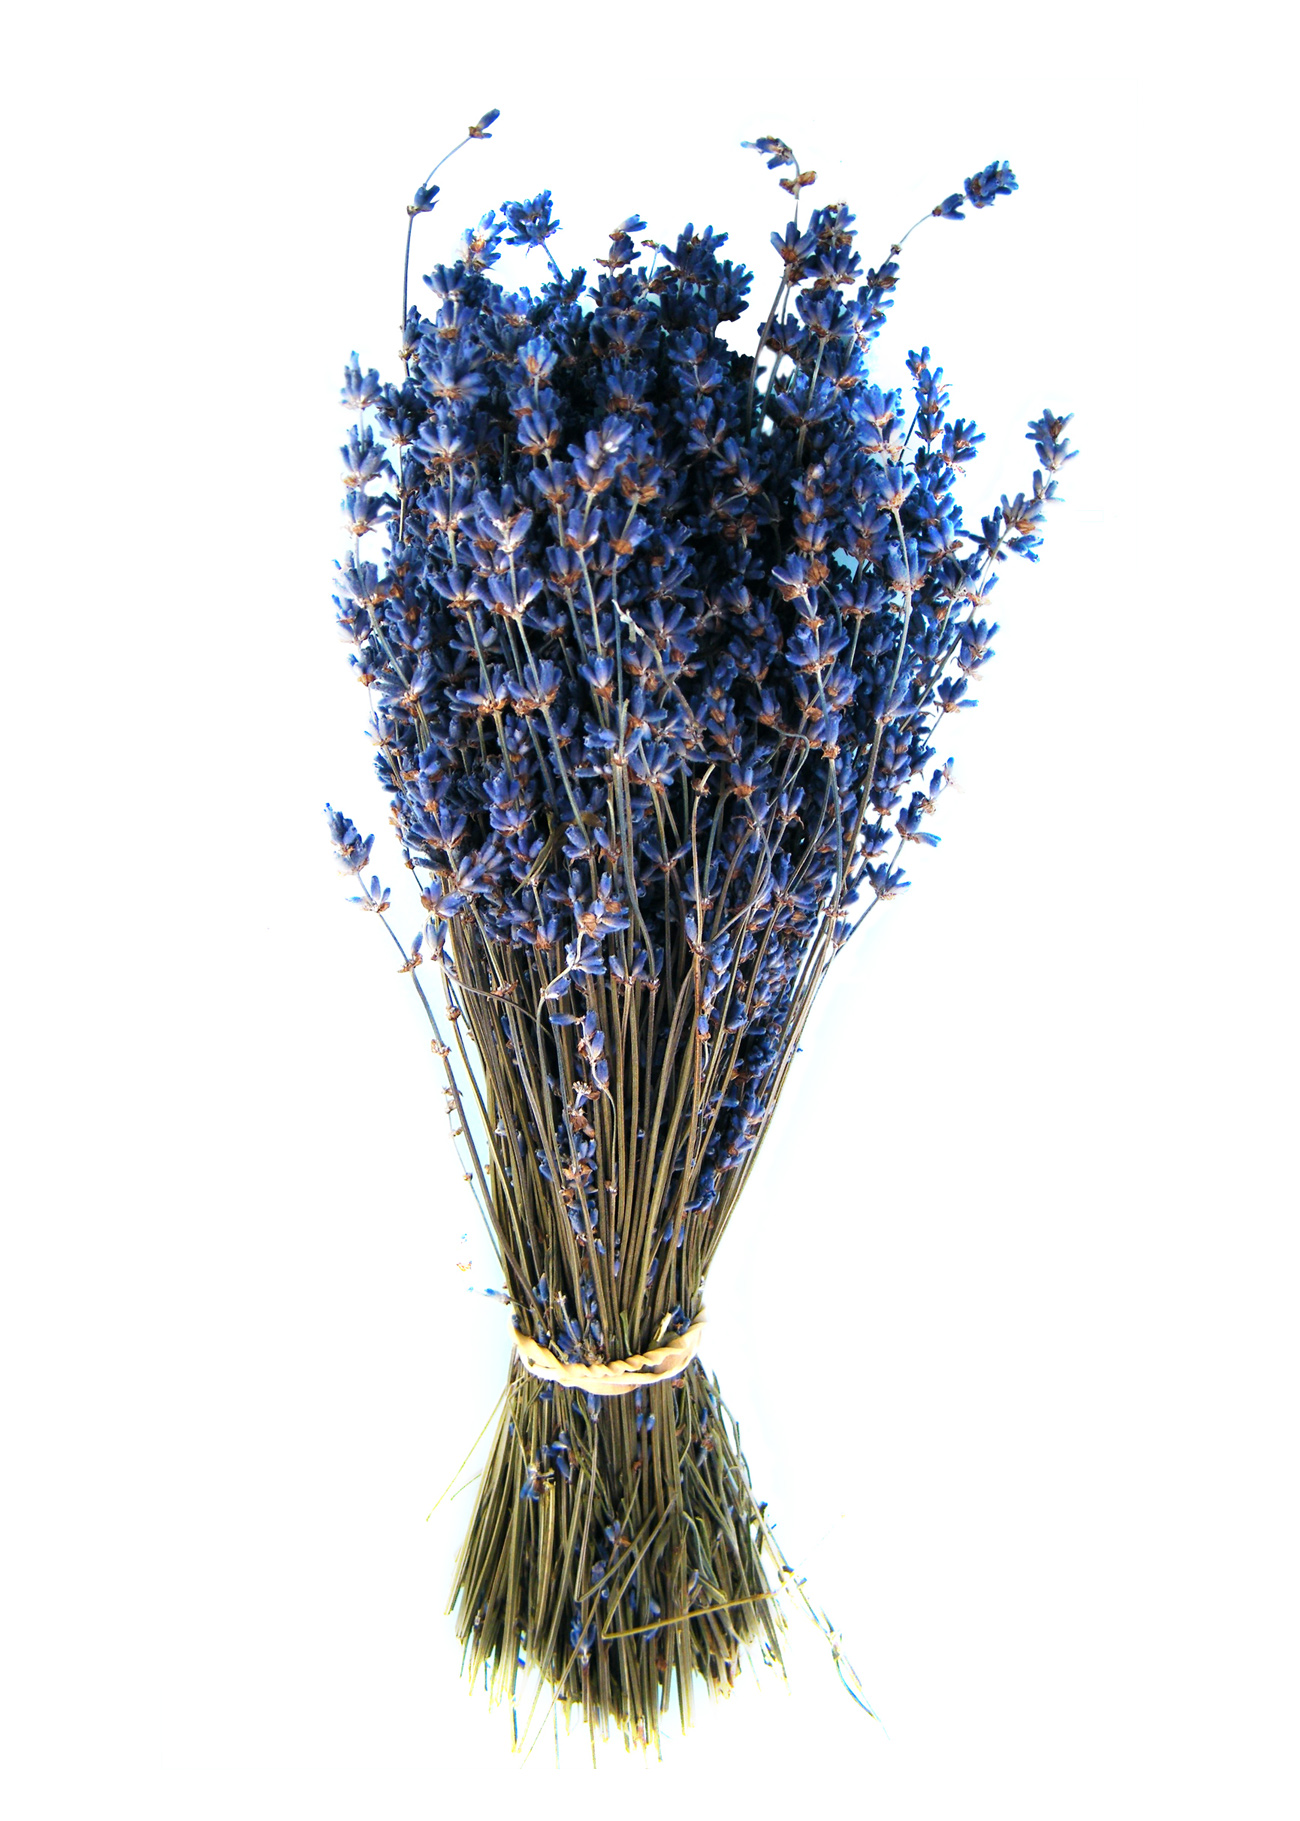 Certified Organic Dried Lavender Bouquets Home Essentials